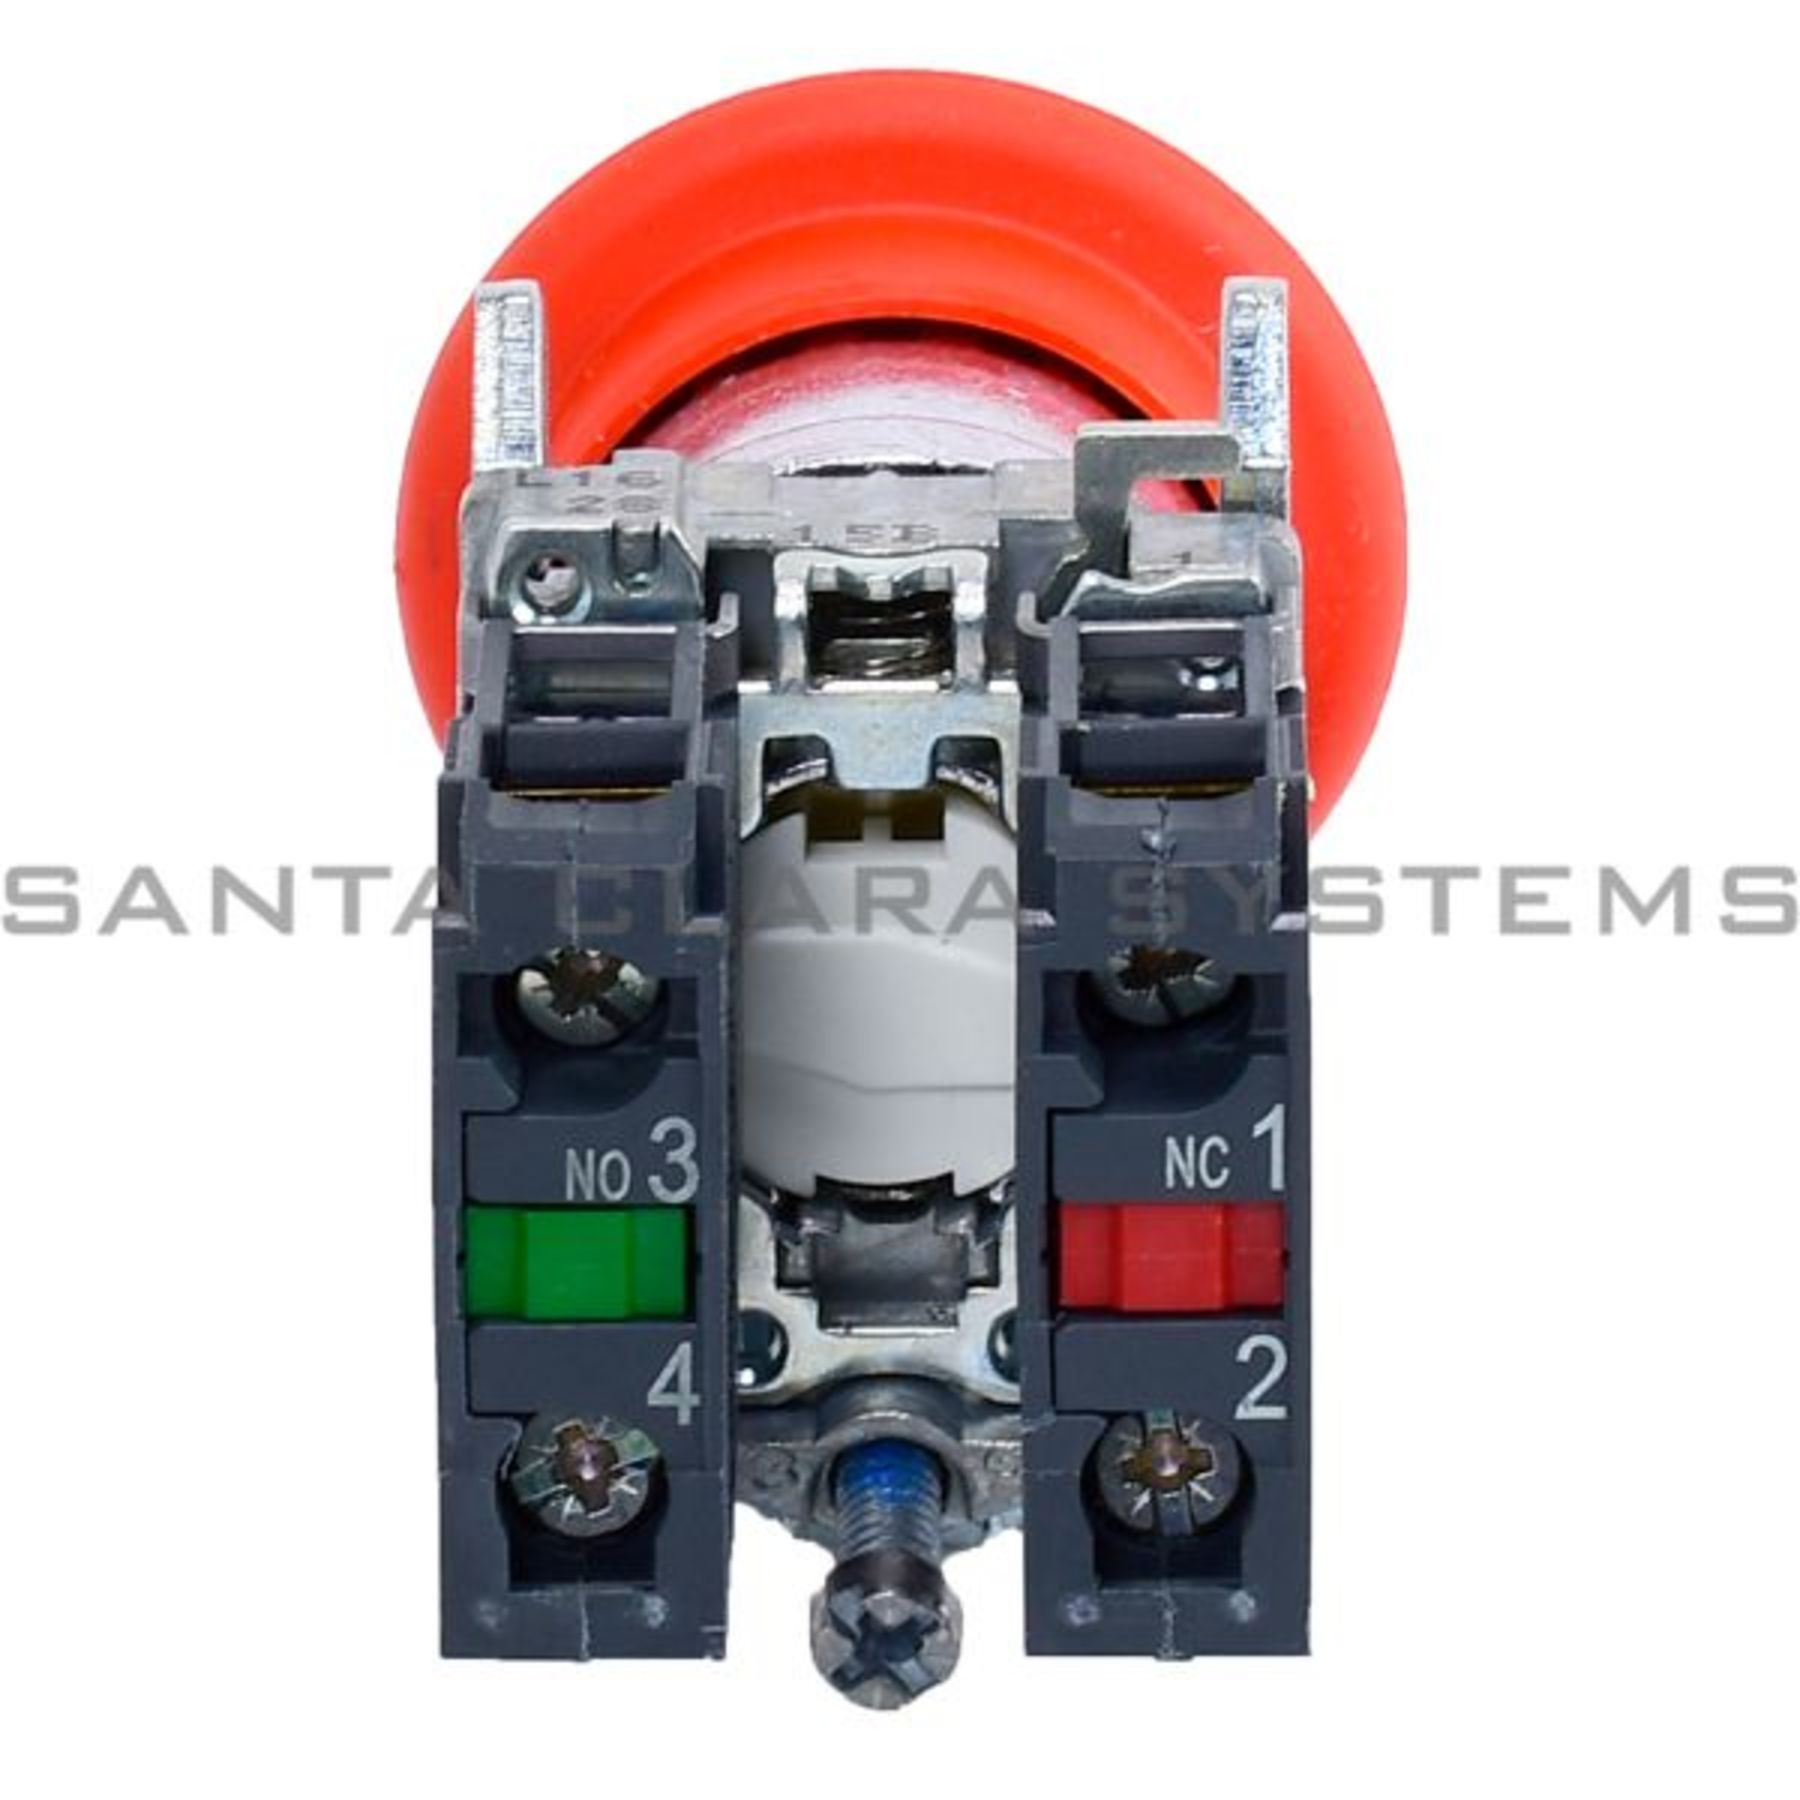 Red Ø40 Emergency Stop Switching Off Ø22 Latching Key Release 1Nc+1No Schneider Electric XB4BS9445 Emergency Pushbutton